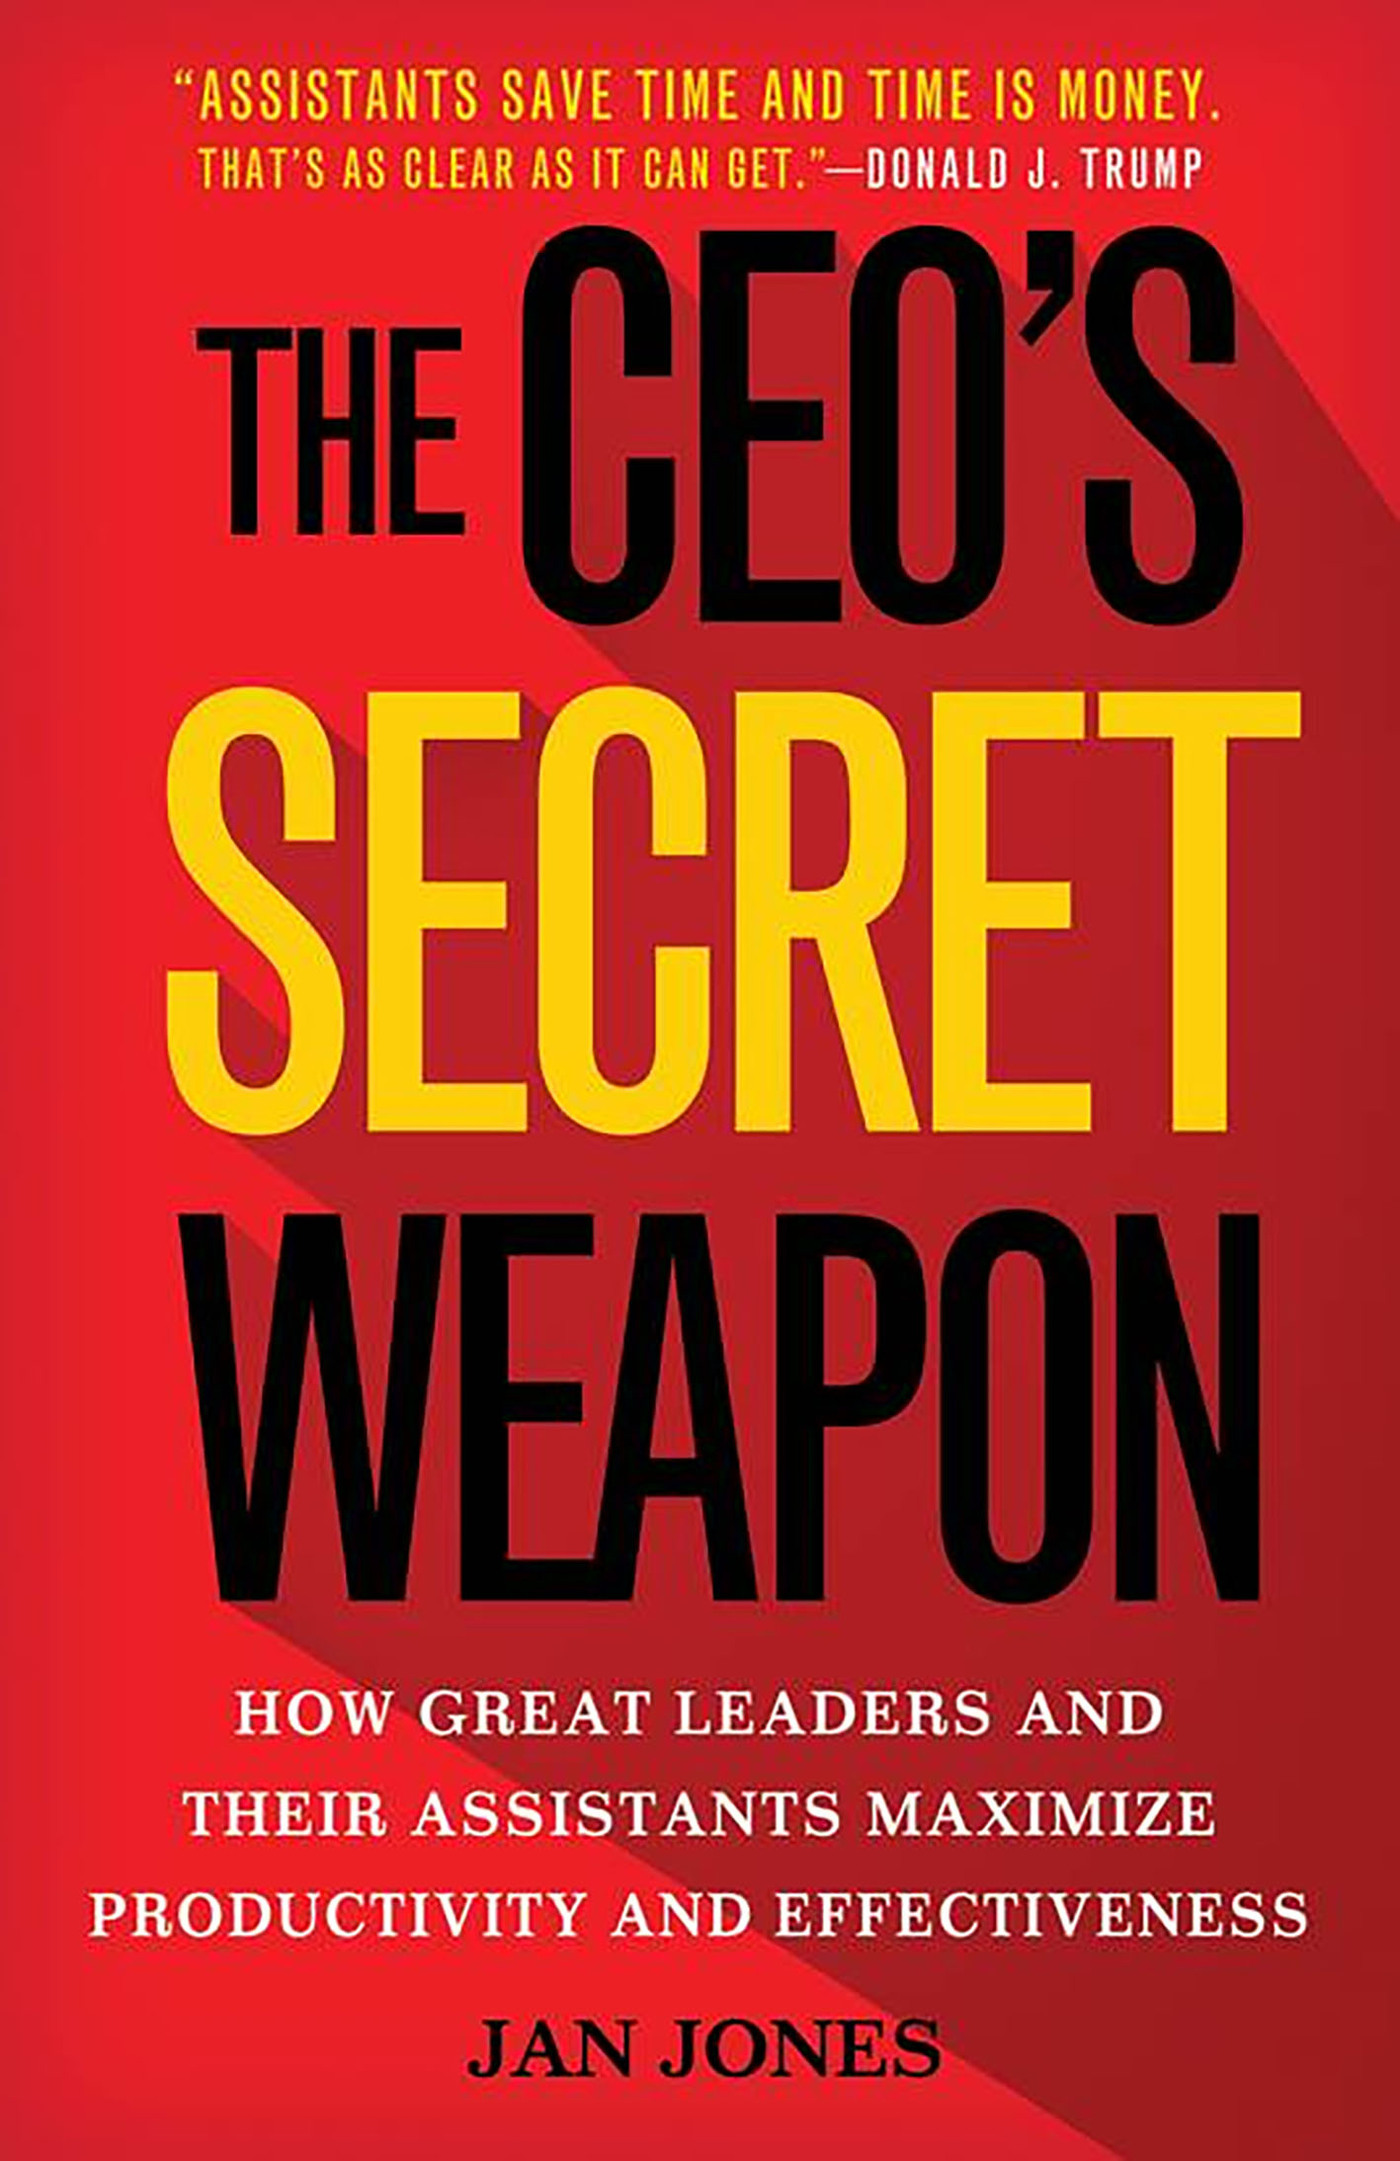 The CEOs Secret Weapon: How Great Leaders and Their Assistants Maximize Productivity and Effectiveness  by  Jan Jones